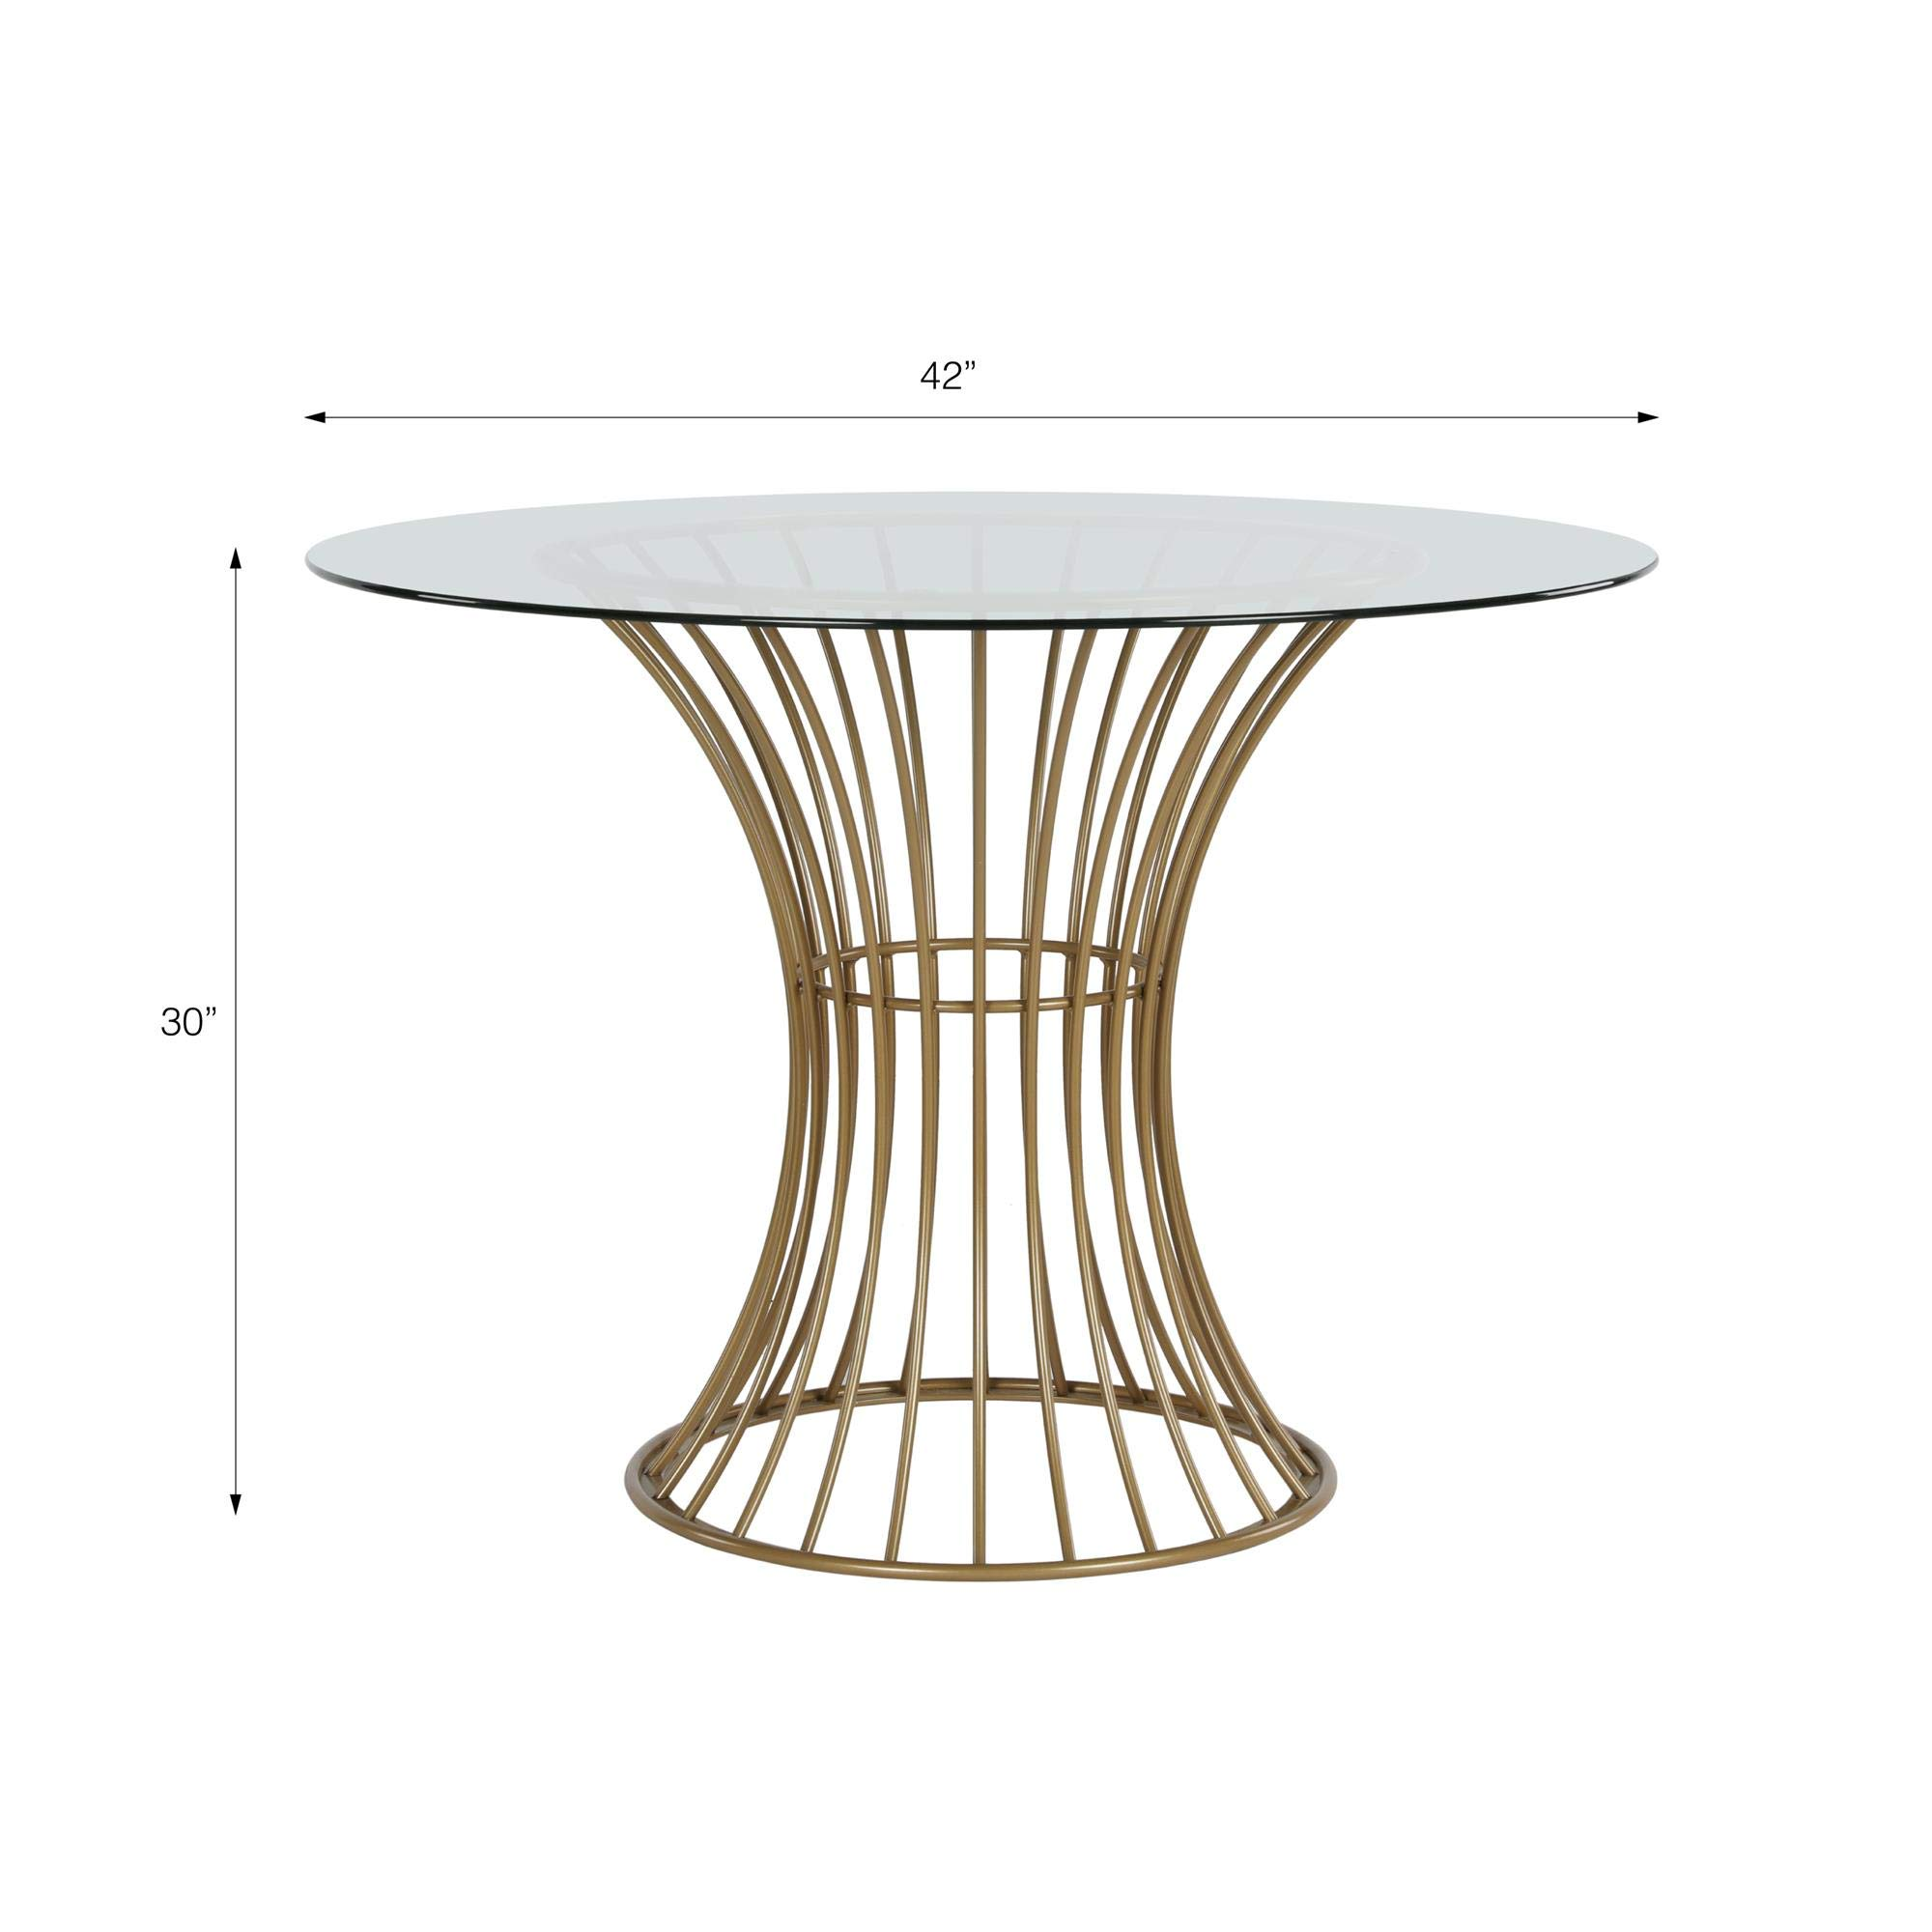 CosmoLiving Westwood Modern Clear Tempered Glass Round Top Dining Table with Hourglass Gold Base - Brass by CosmoLiving by Cosmopolitan (Image #7)